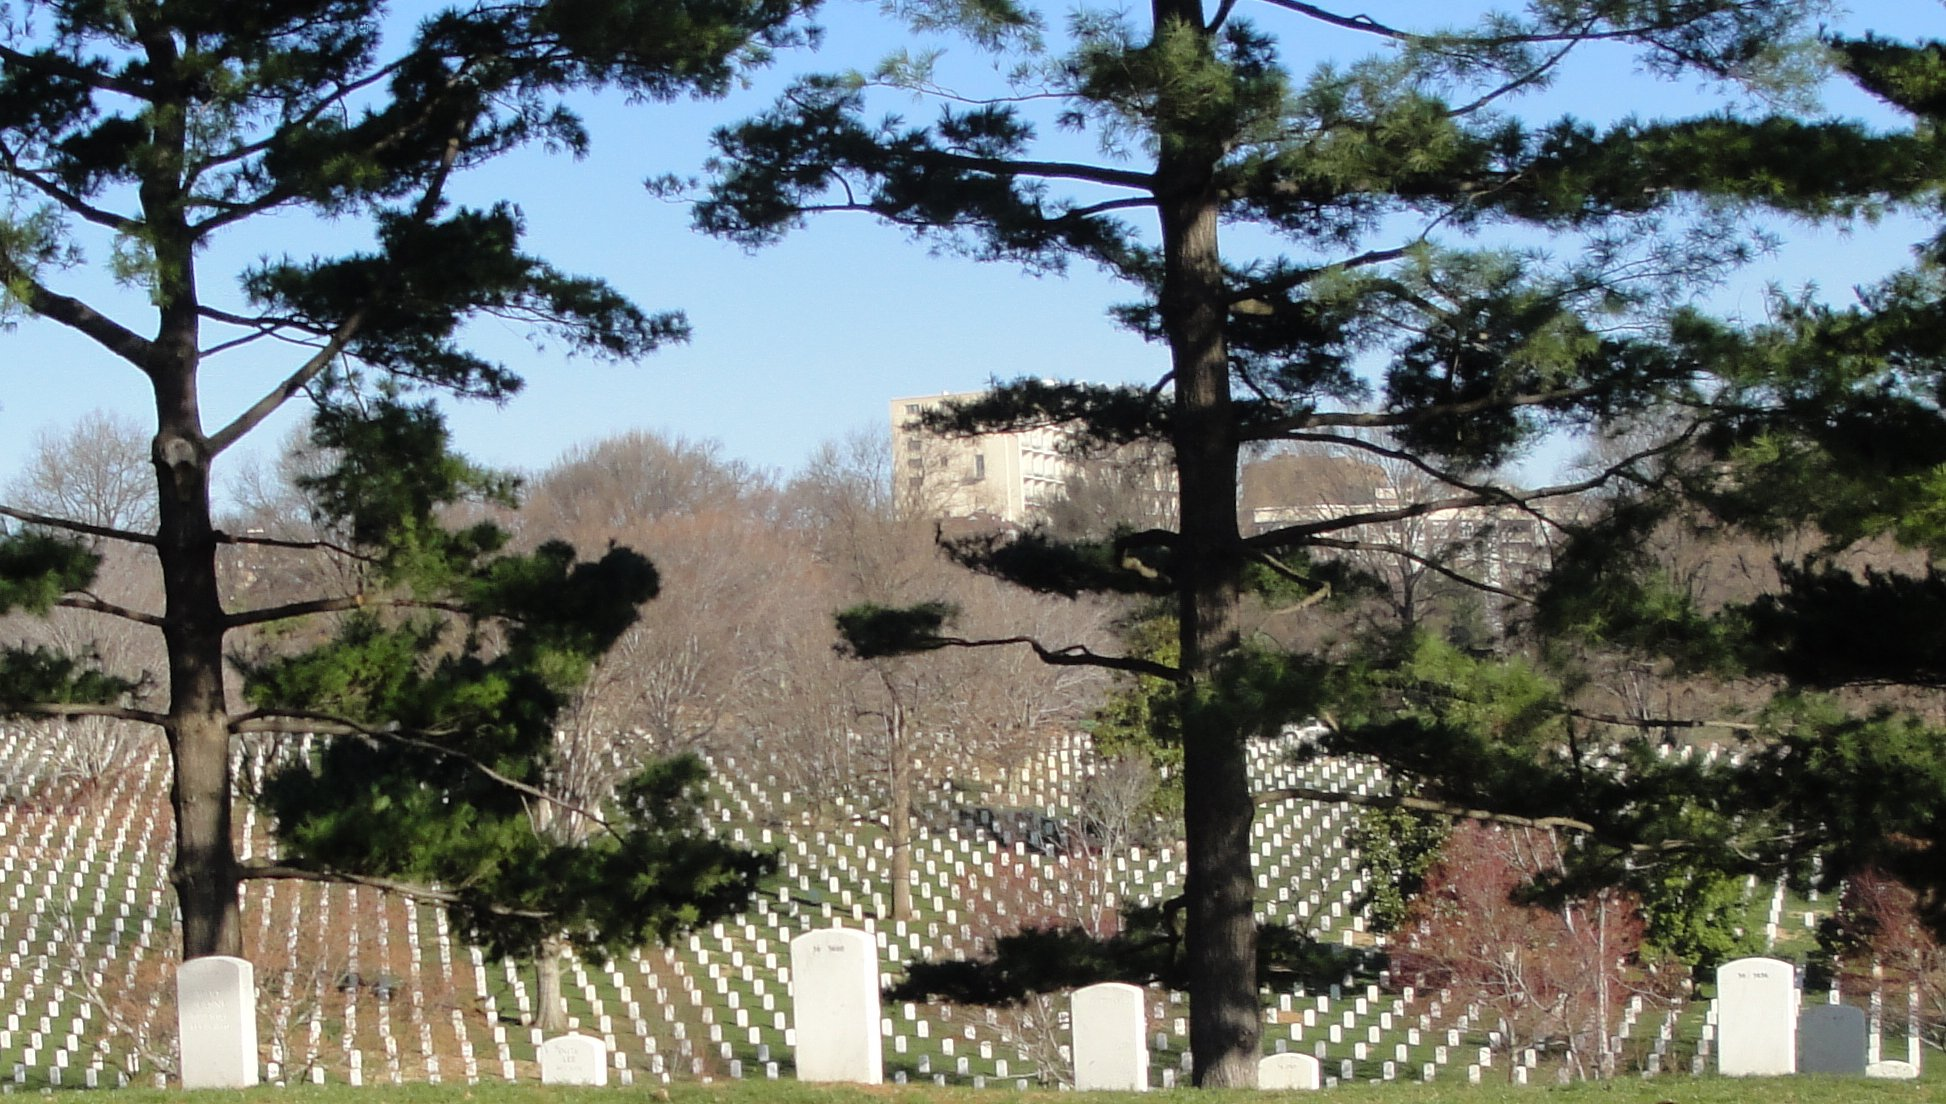 Arlington Cemetary on March 18, 2010